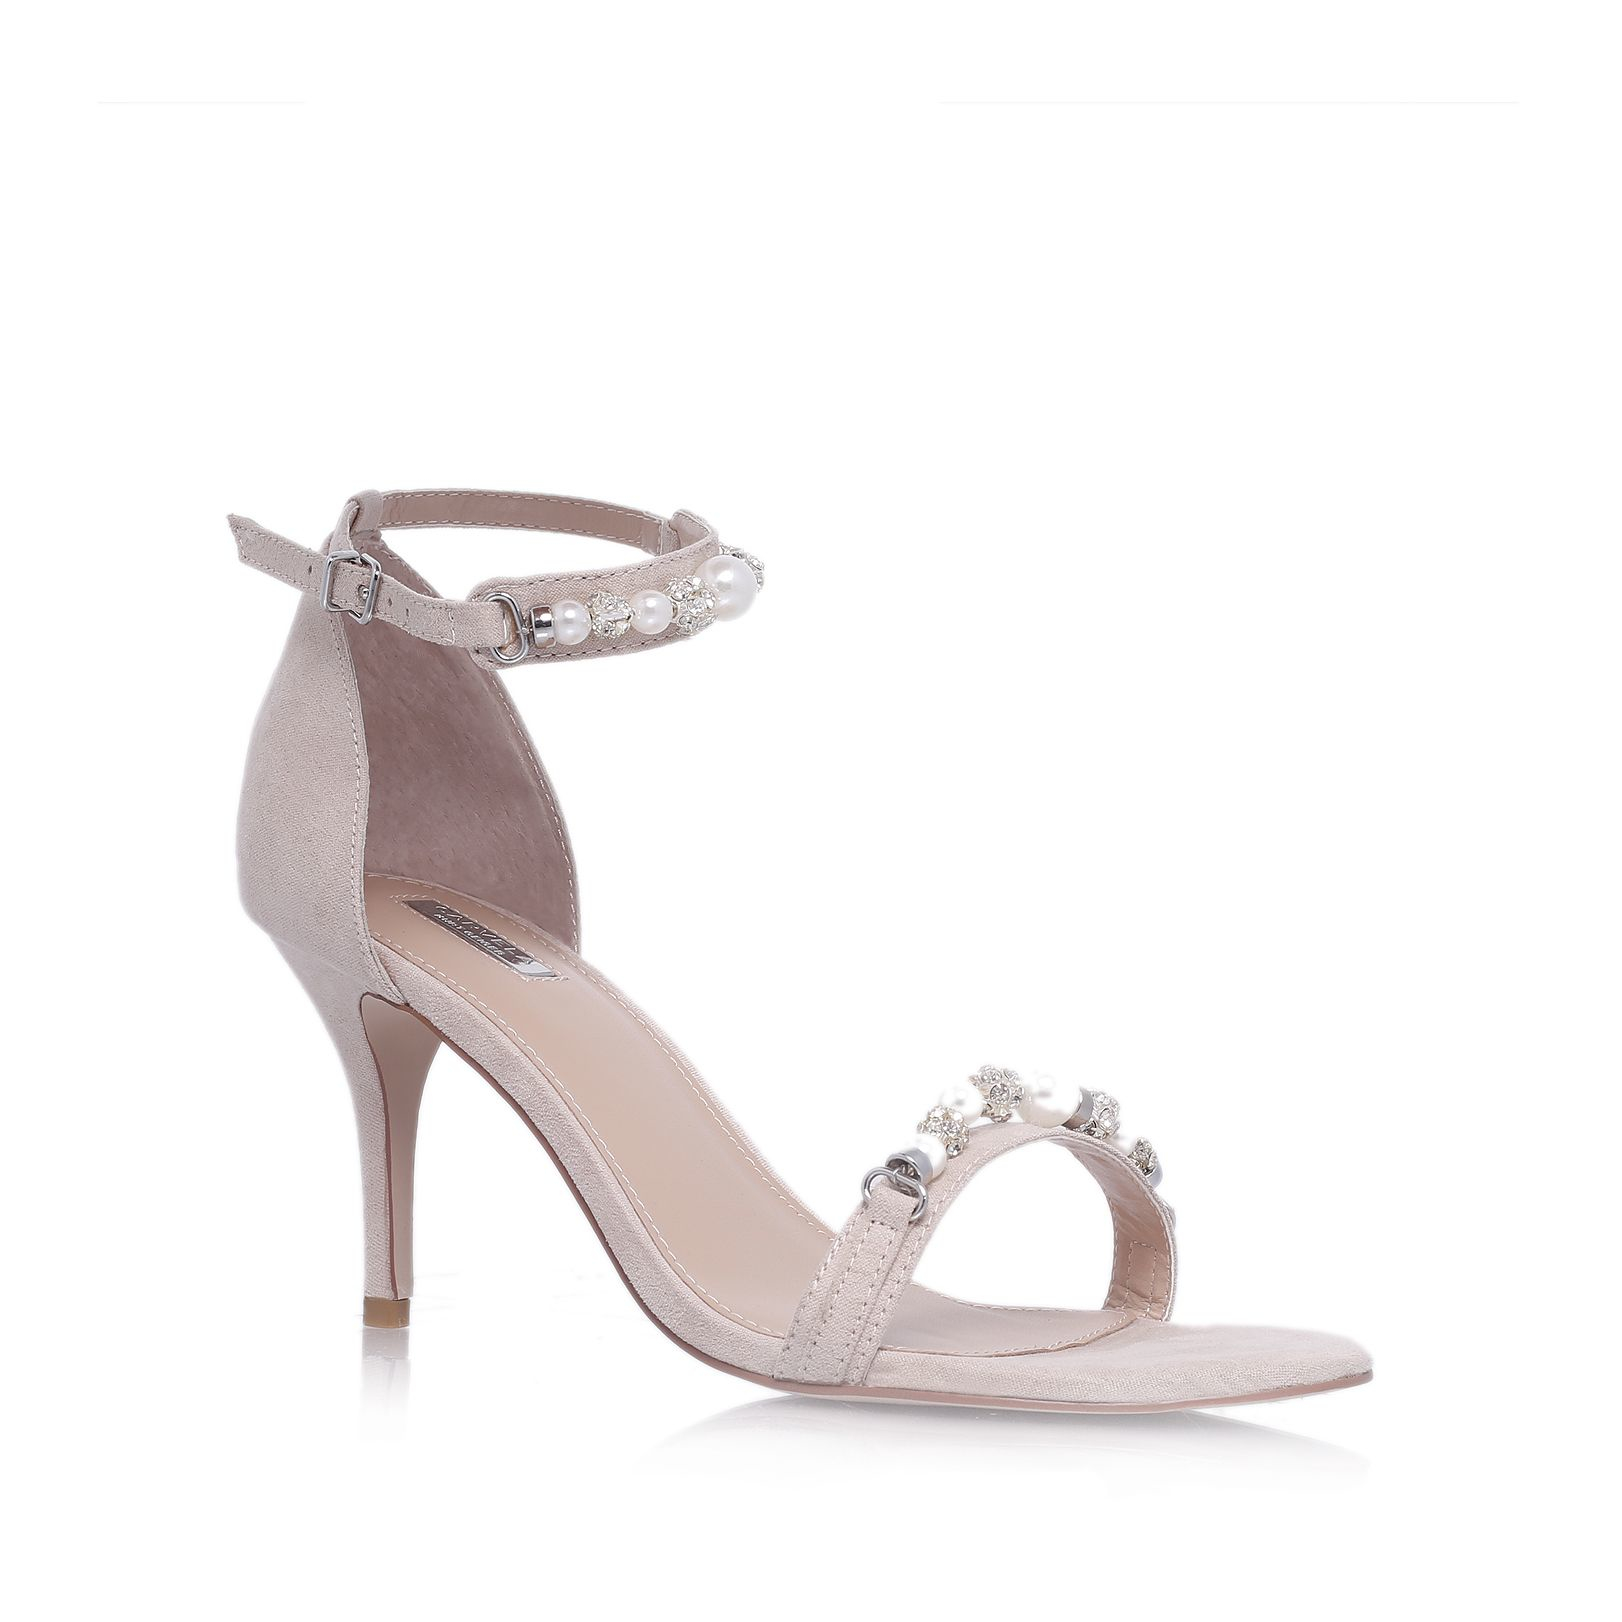 KG by Kurt Geiger Bethany Patent Studded Bow Court Shoes